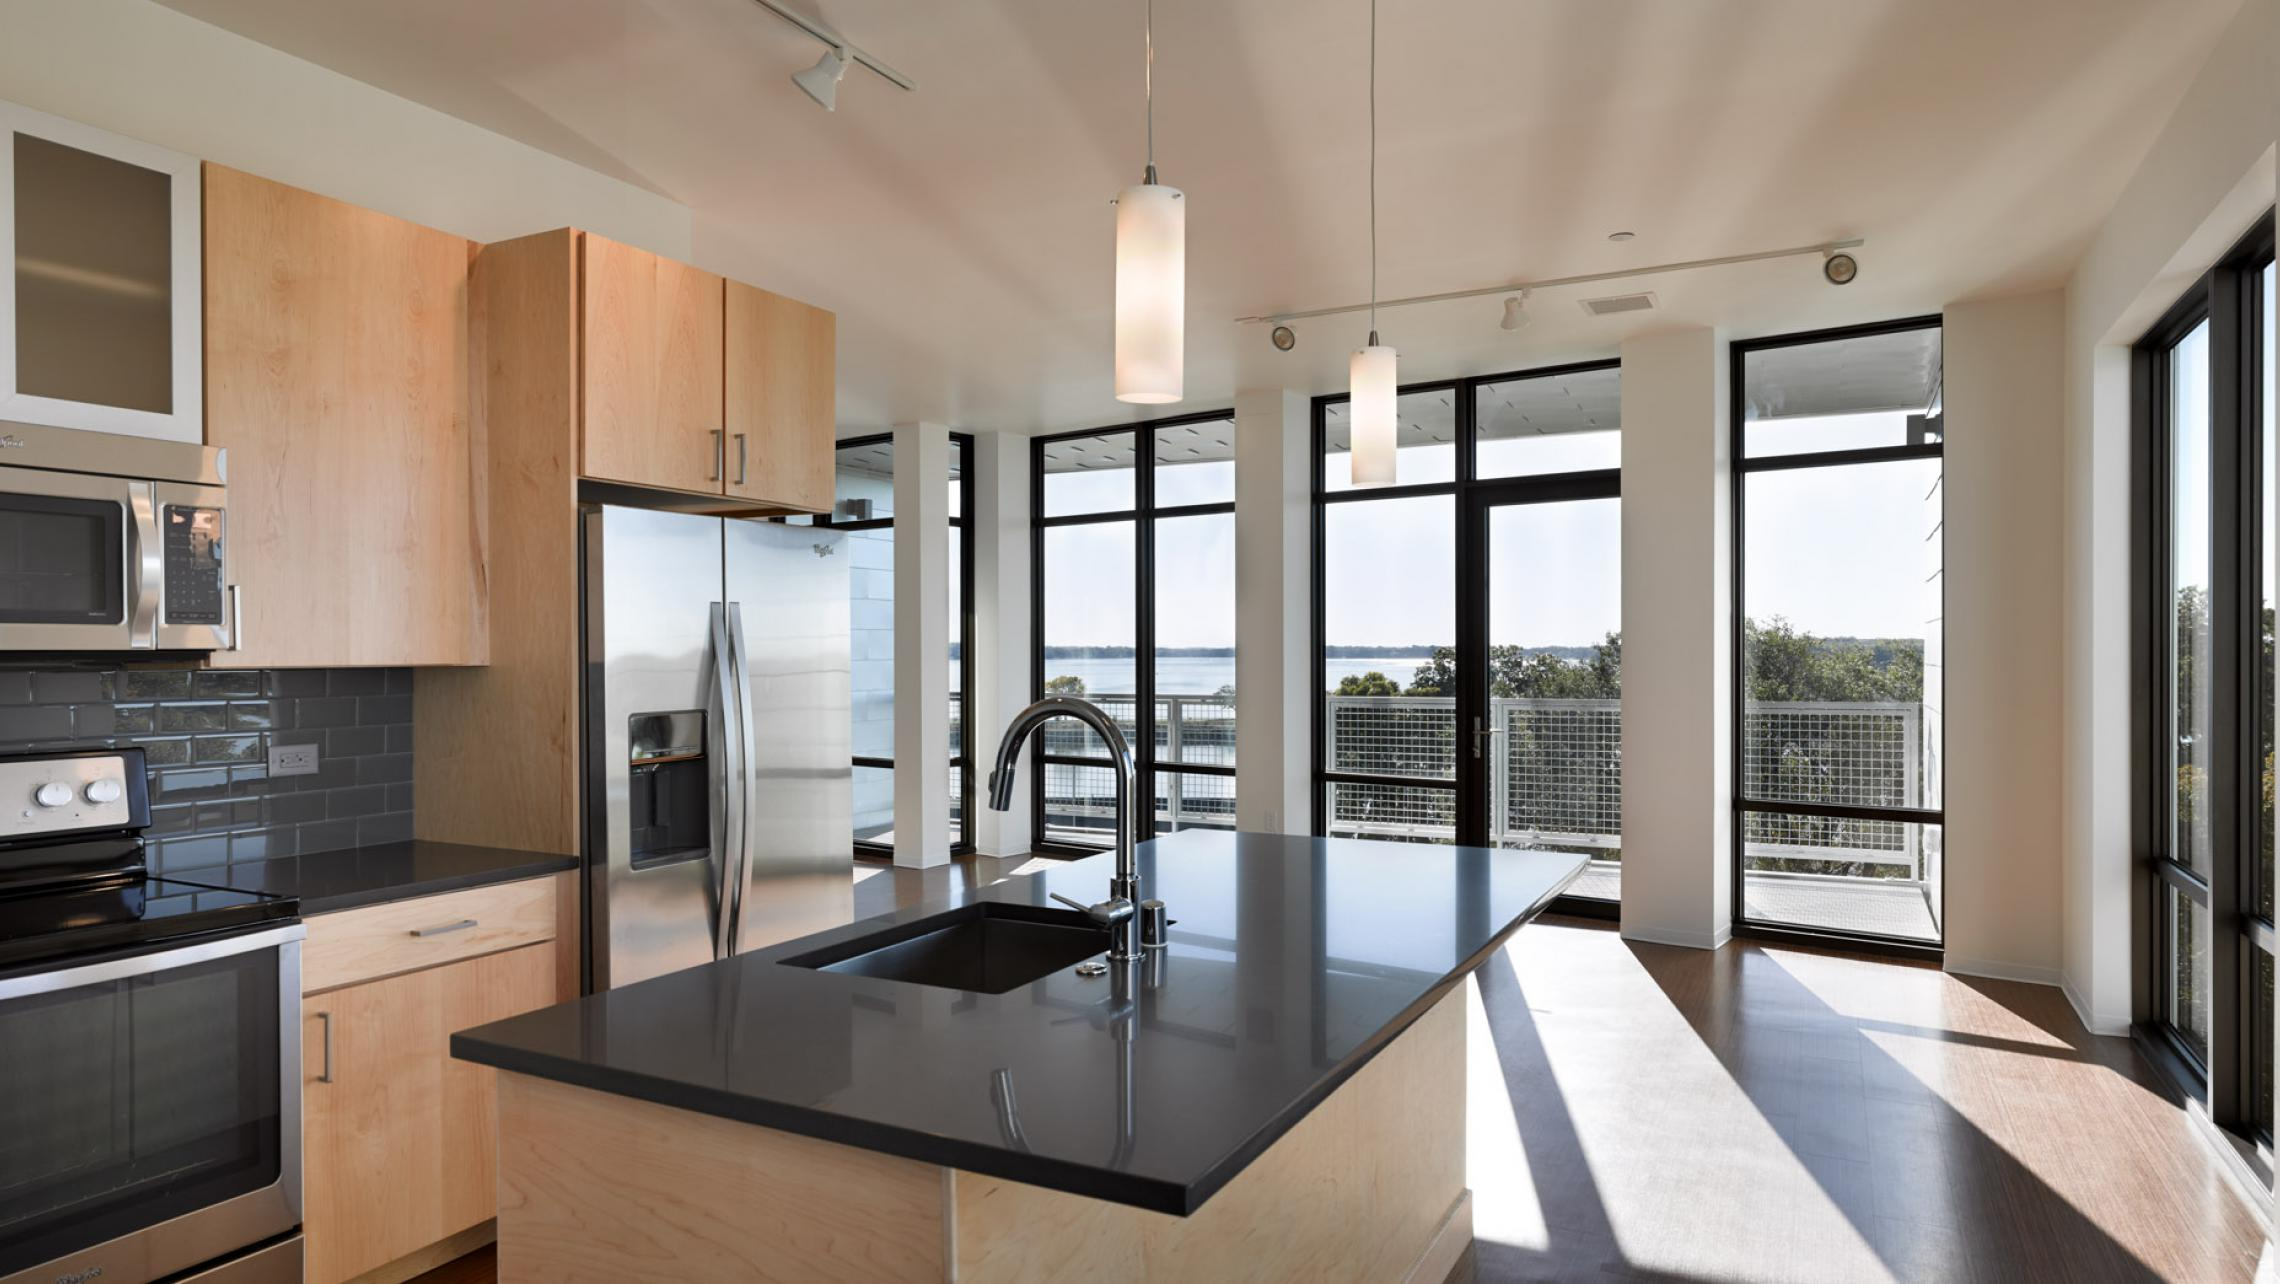 ULI Seven27 Apartments - Kitchen with a lake view and natural light